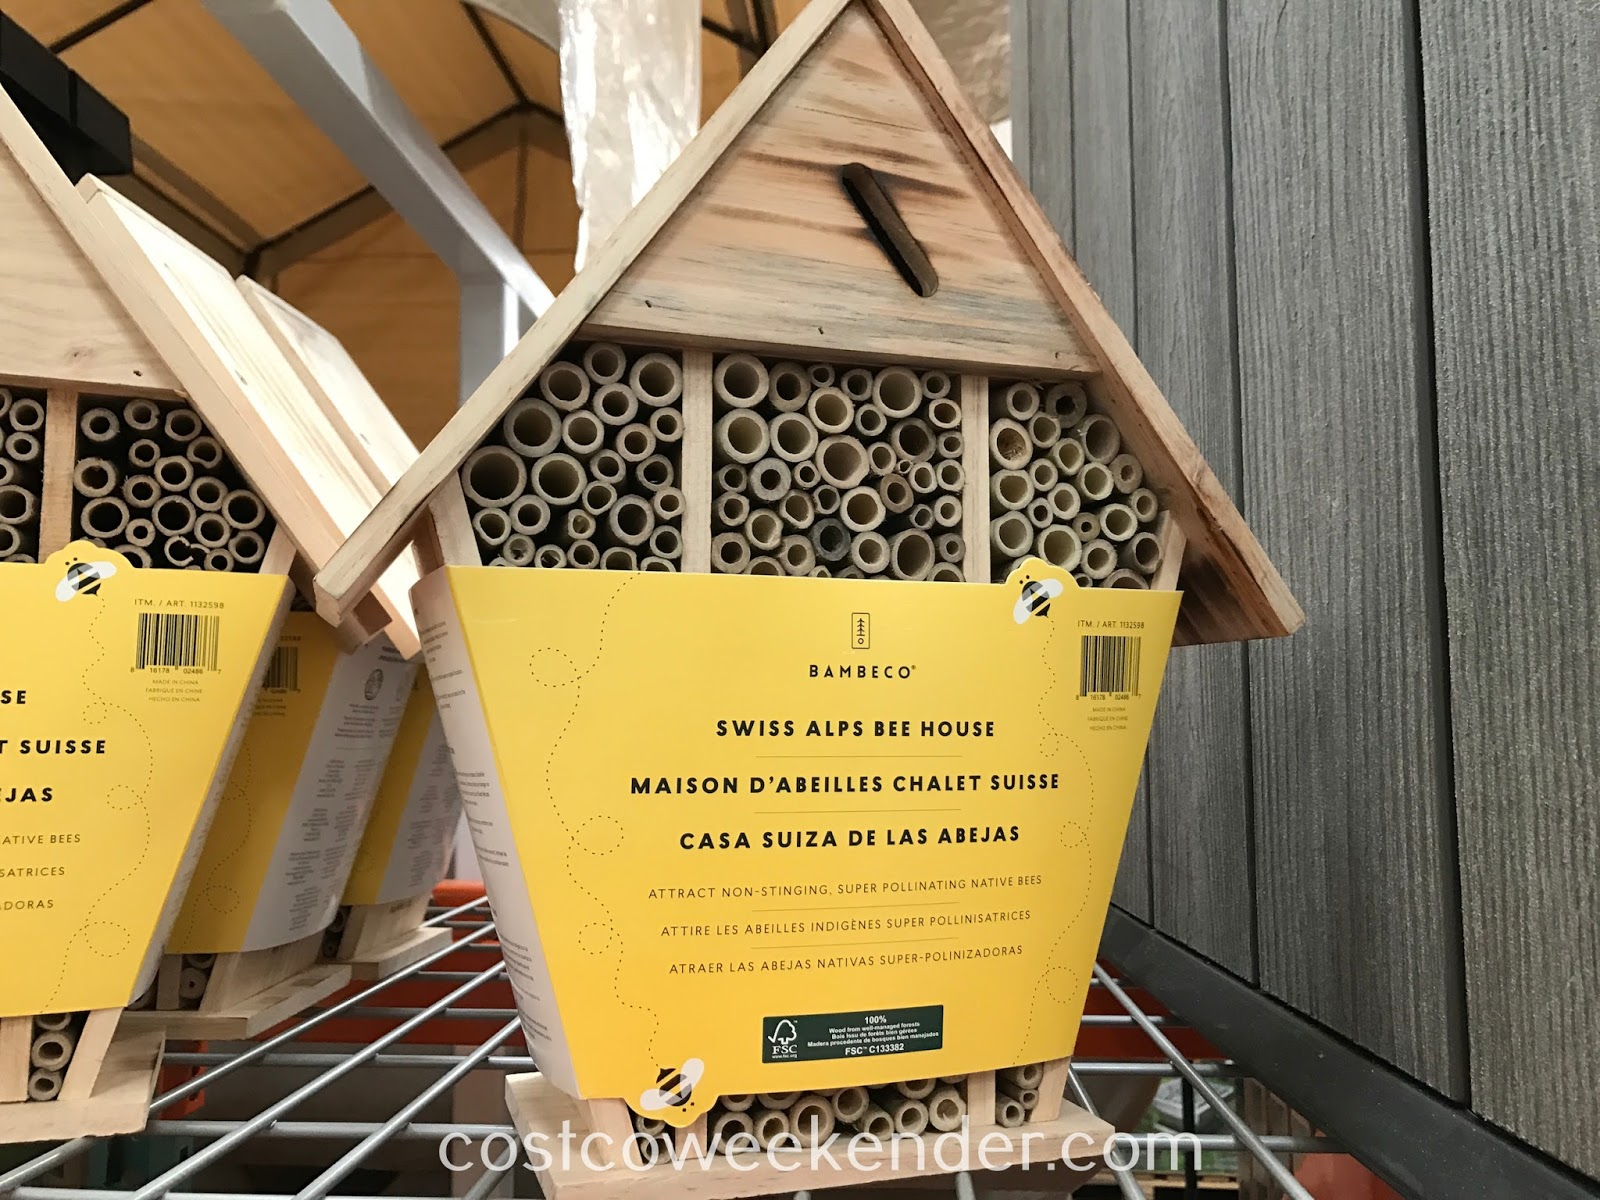 Take up beekeeping with the Bambeco Swiss Alps Bee House